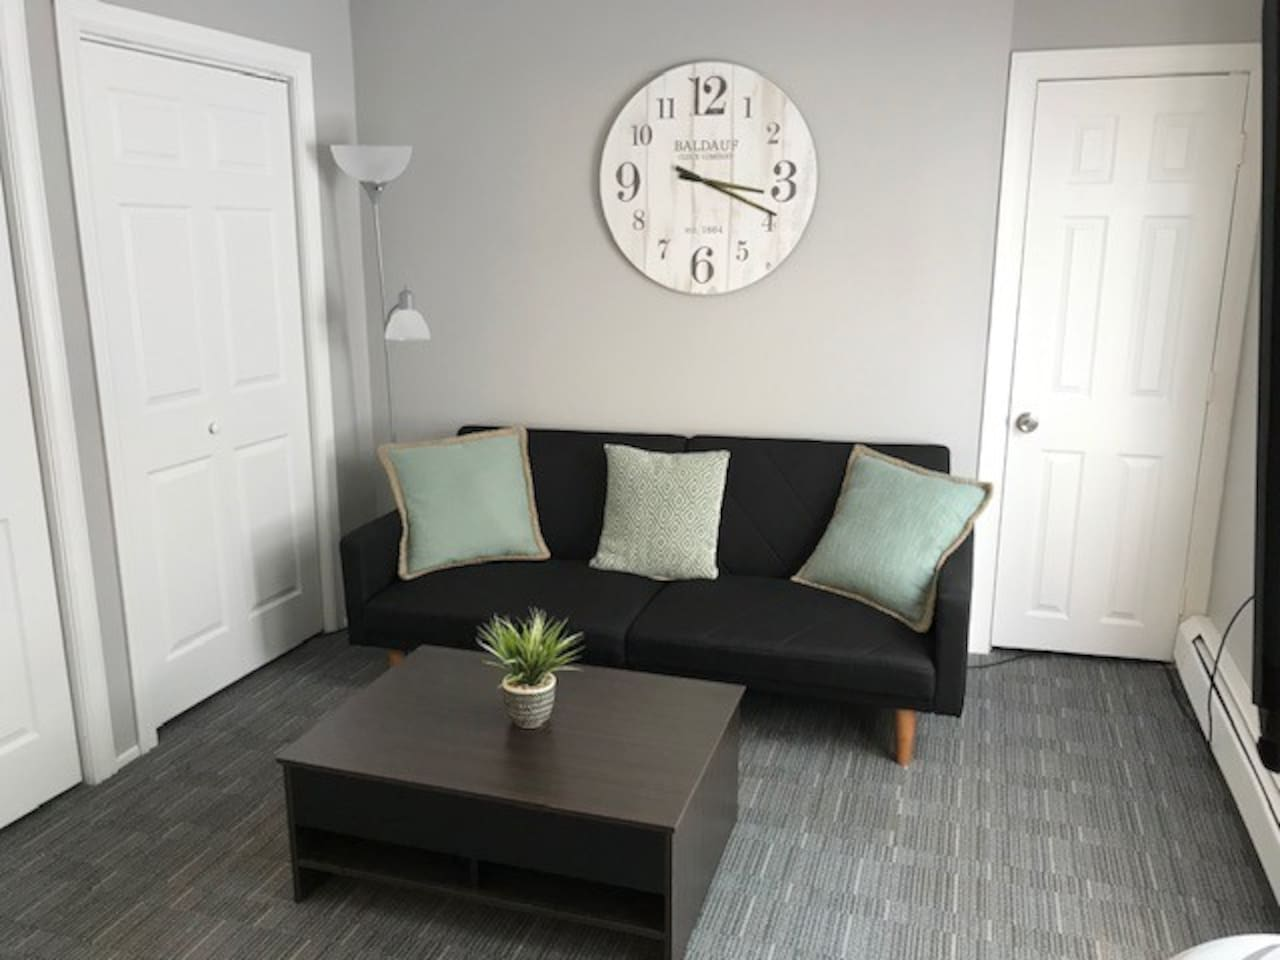 Living room with convertible sofa